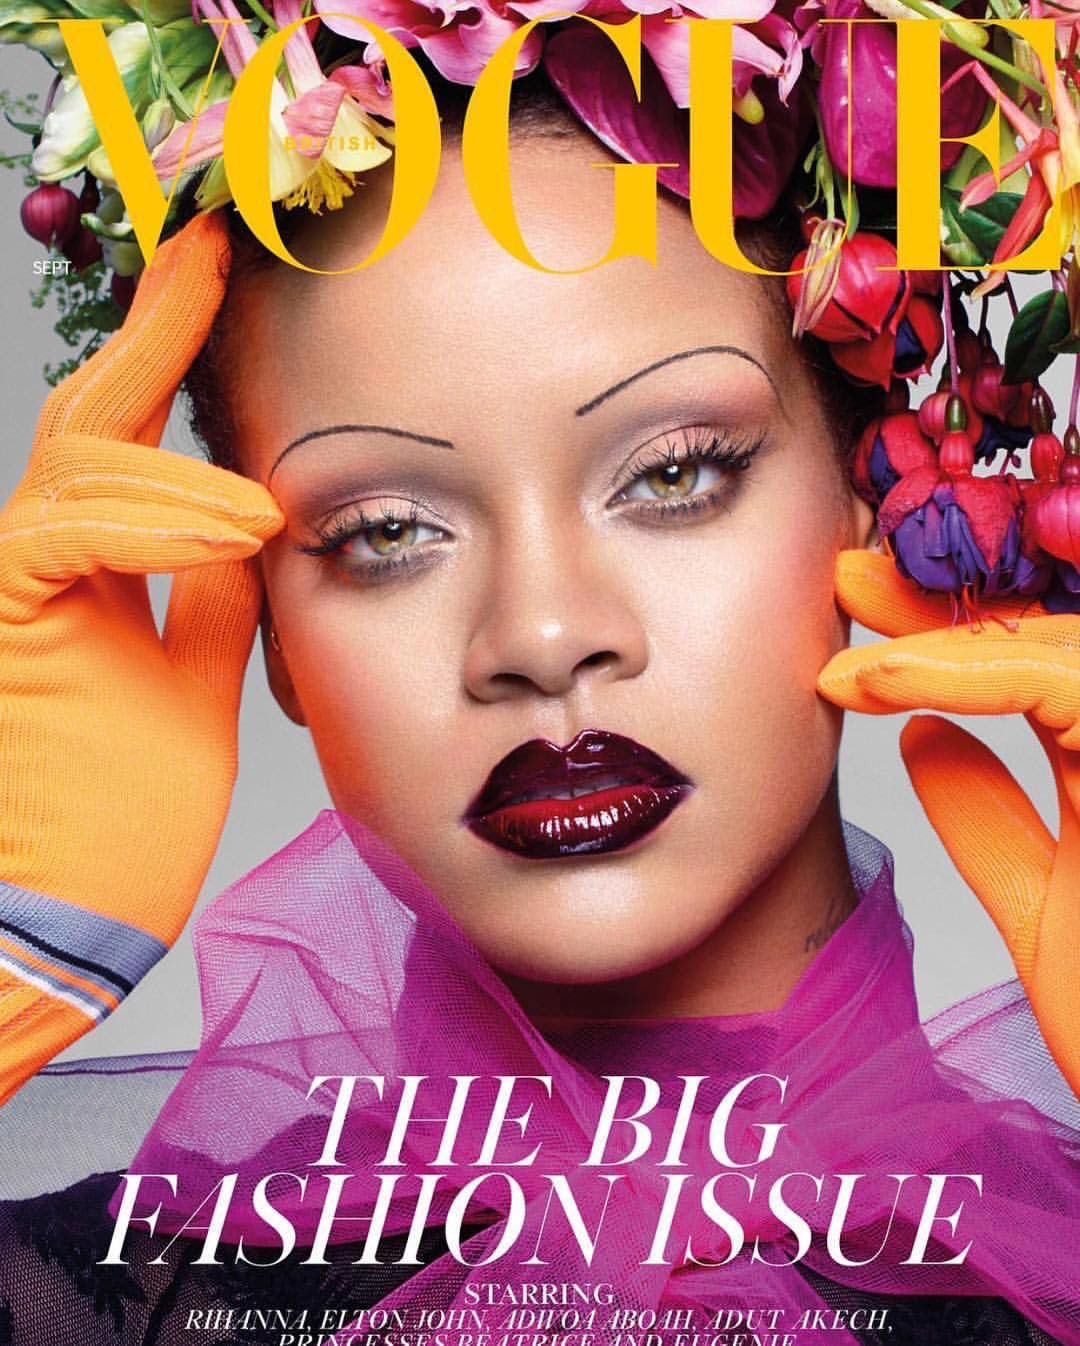 Rihanna Makes History As She Covers The Latest Issue Of British Vogue